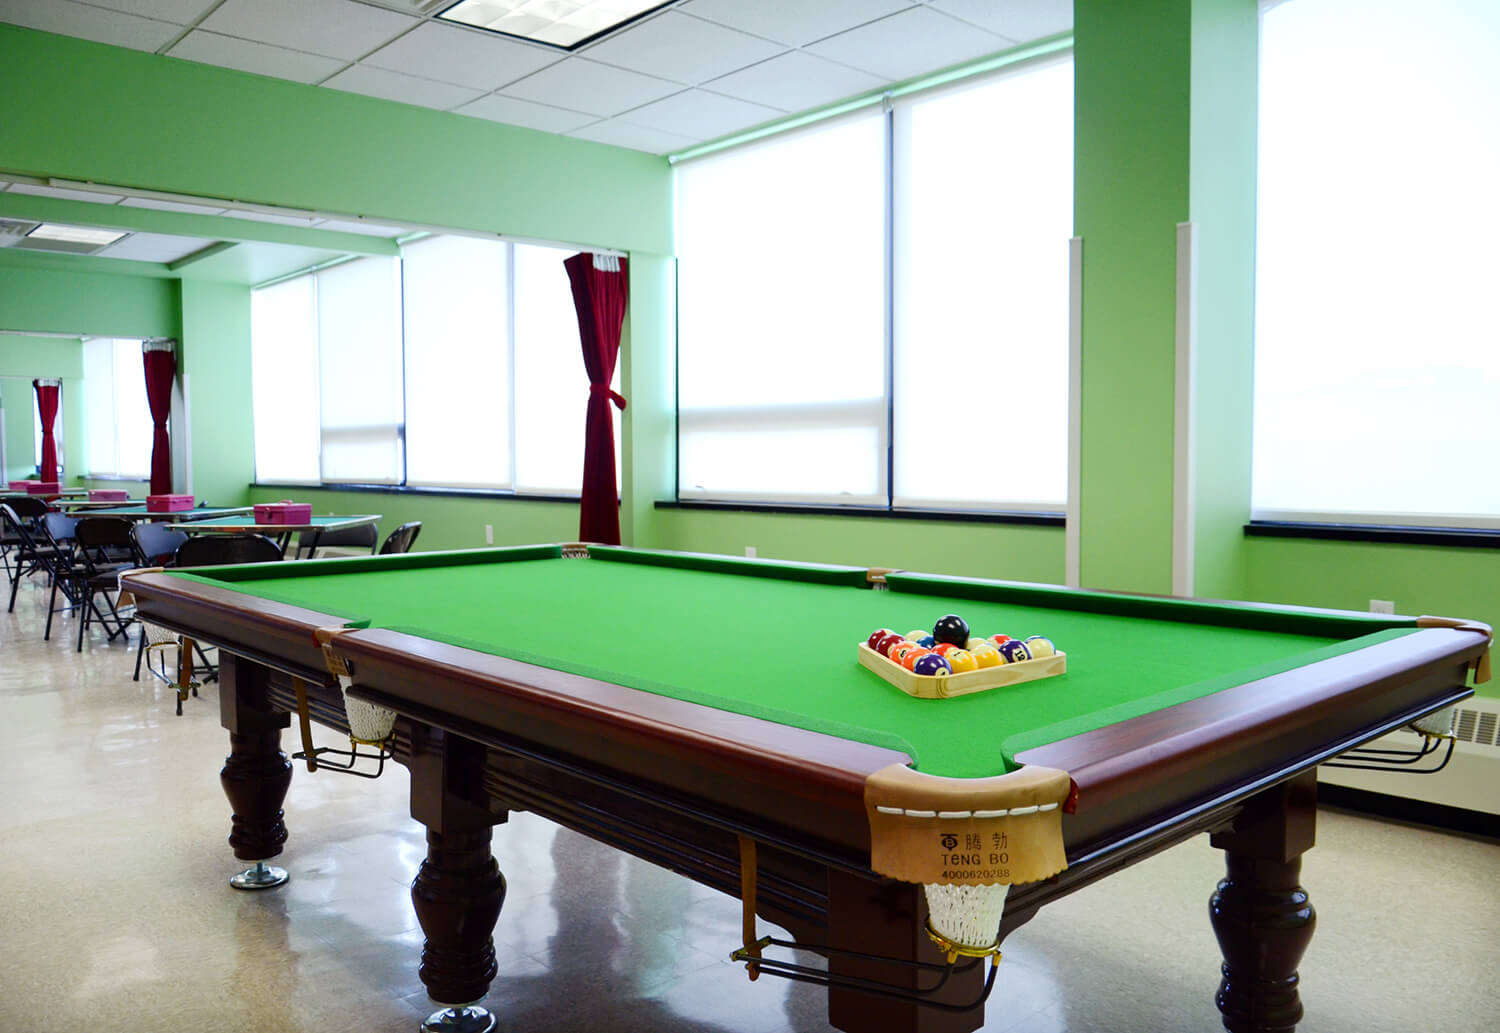 sunlight-fun-adult-senior-care-game-room-billiards